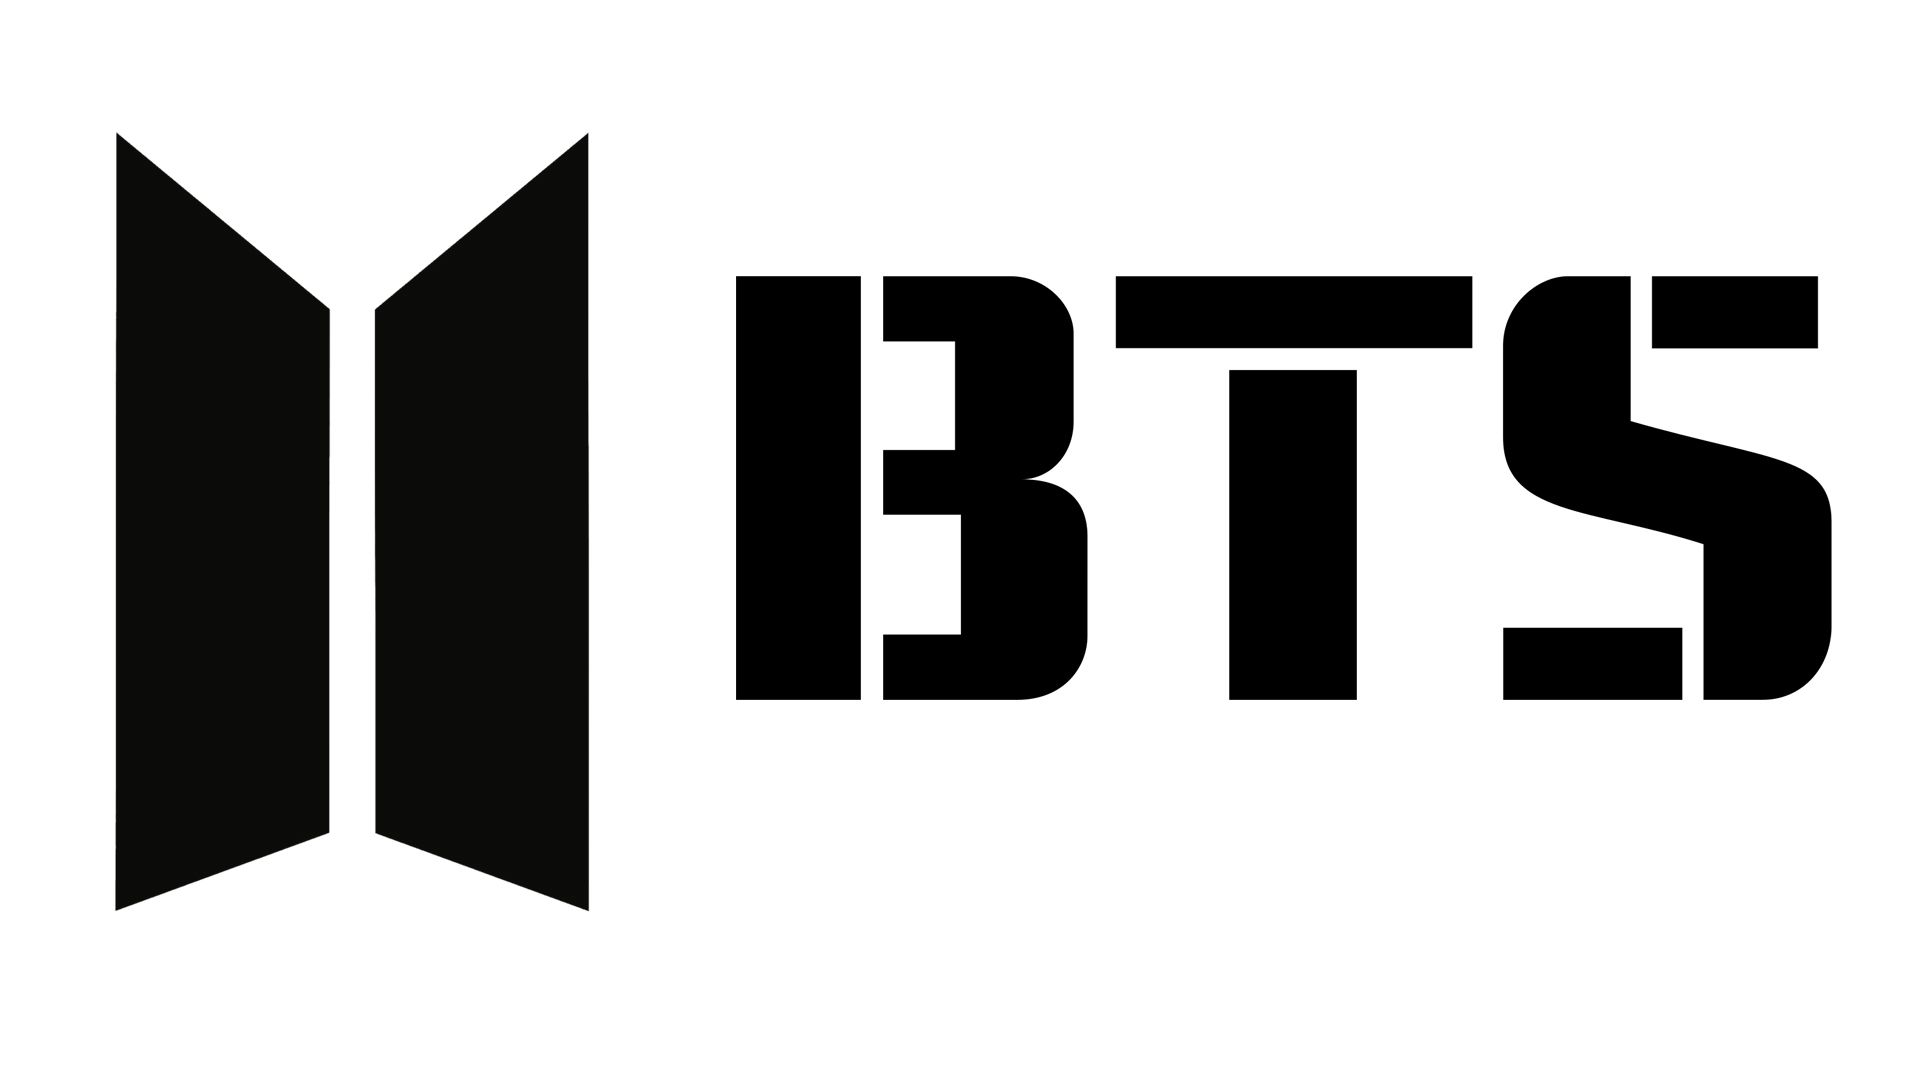 BTS Logo - BTS Logo, symbol meaning, History and Evolution